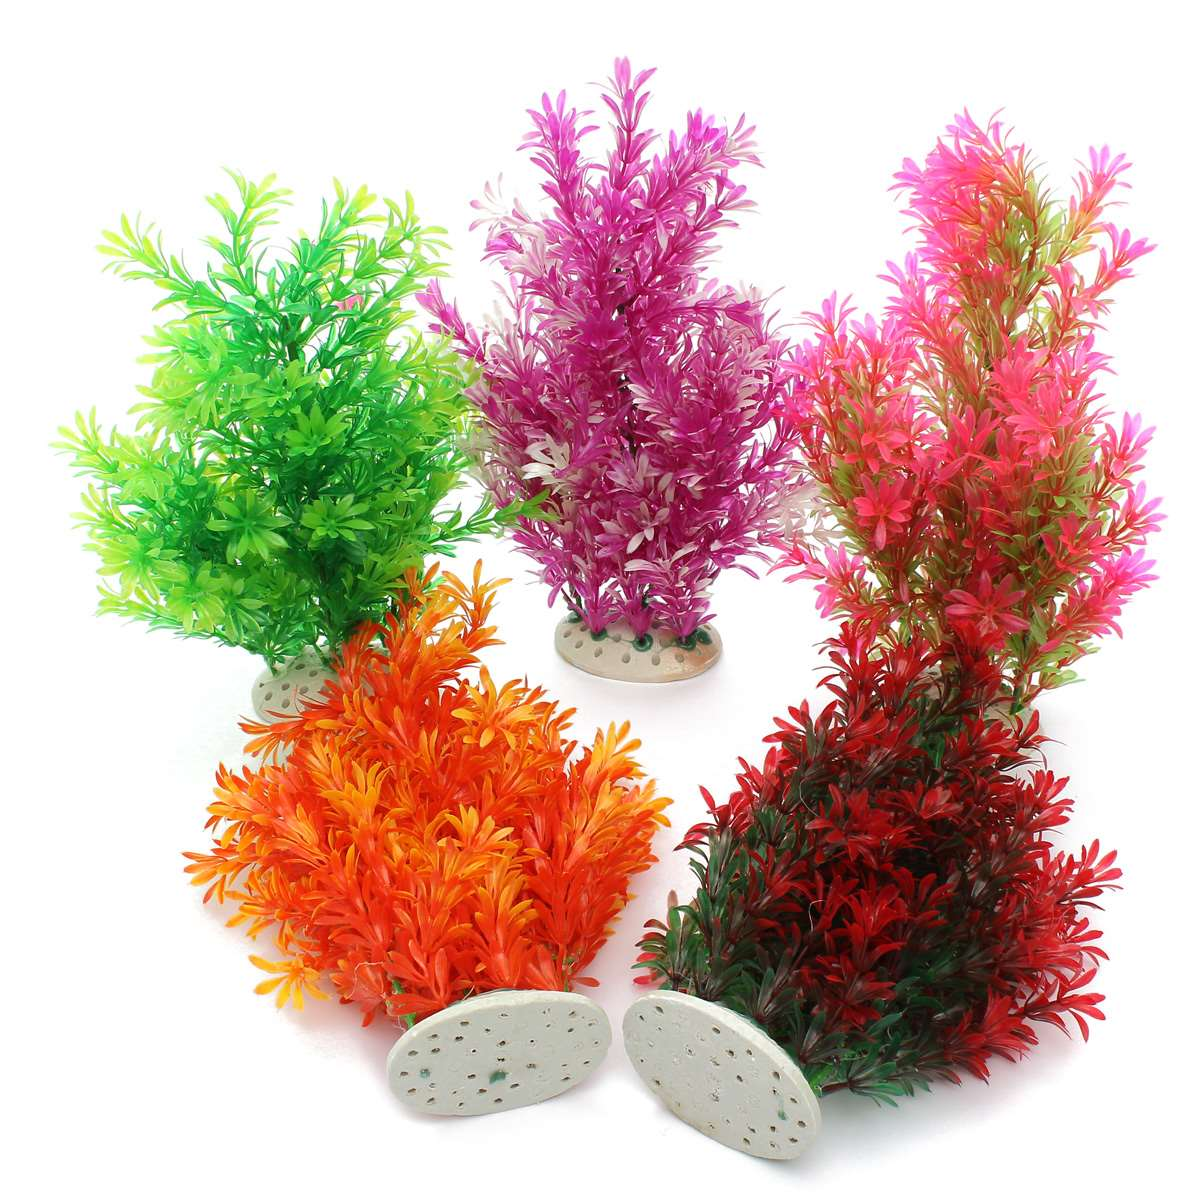 Plastic 4 Color Fish Tank Aquarium Plants Decor Flower Ornament NewGrass Exquisite Landscape 38x11cm-in Party DIY Decorations from Home & Garden on ...